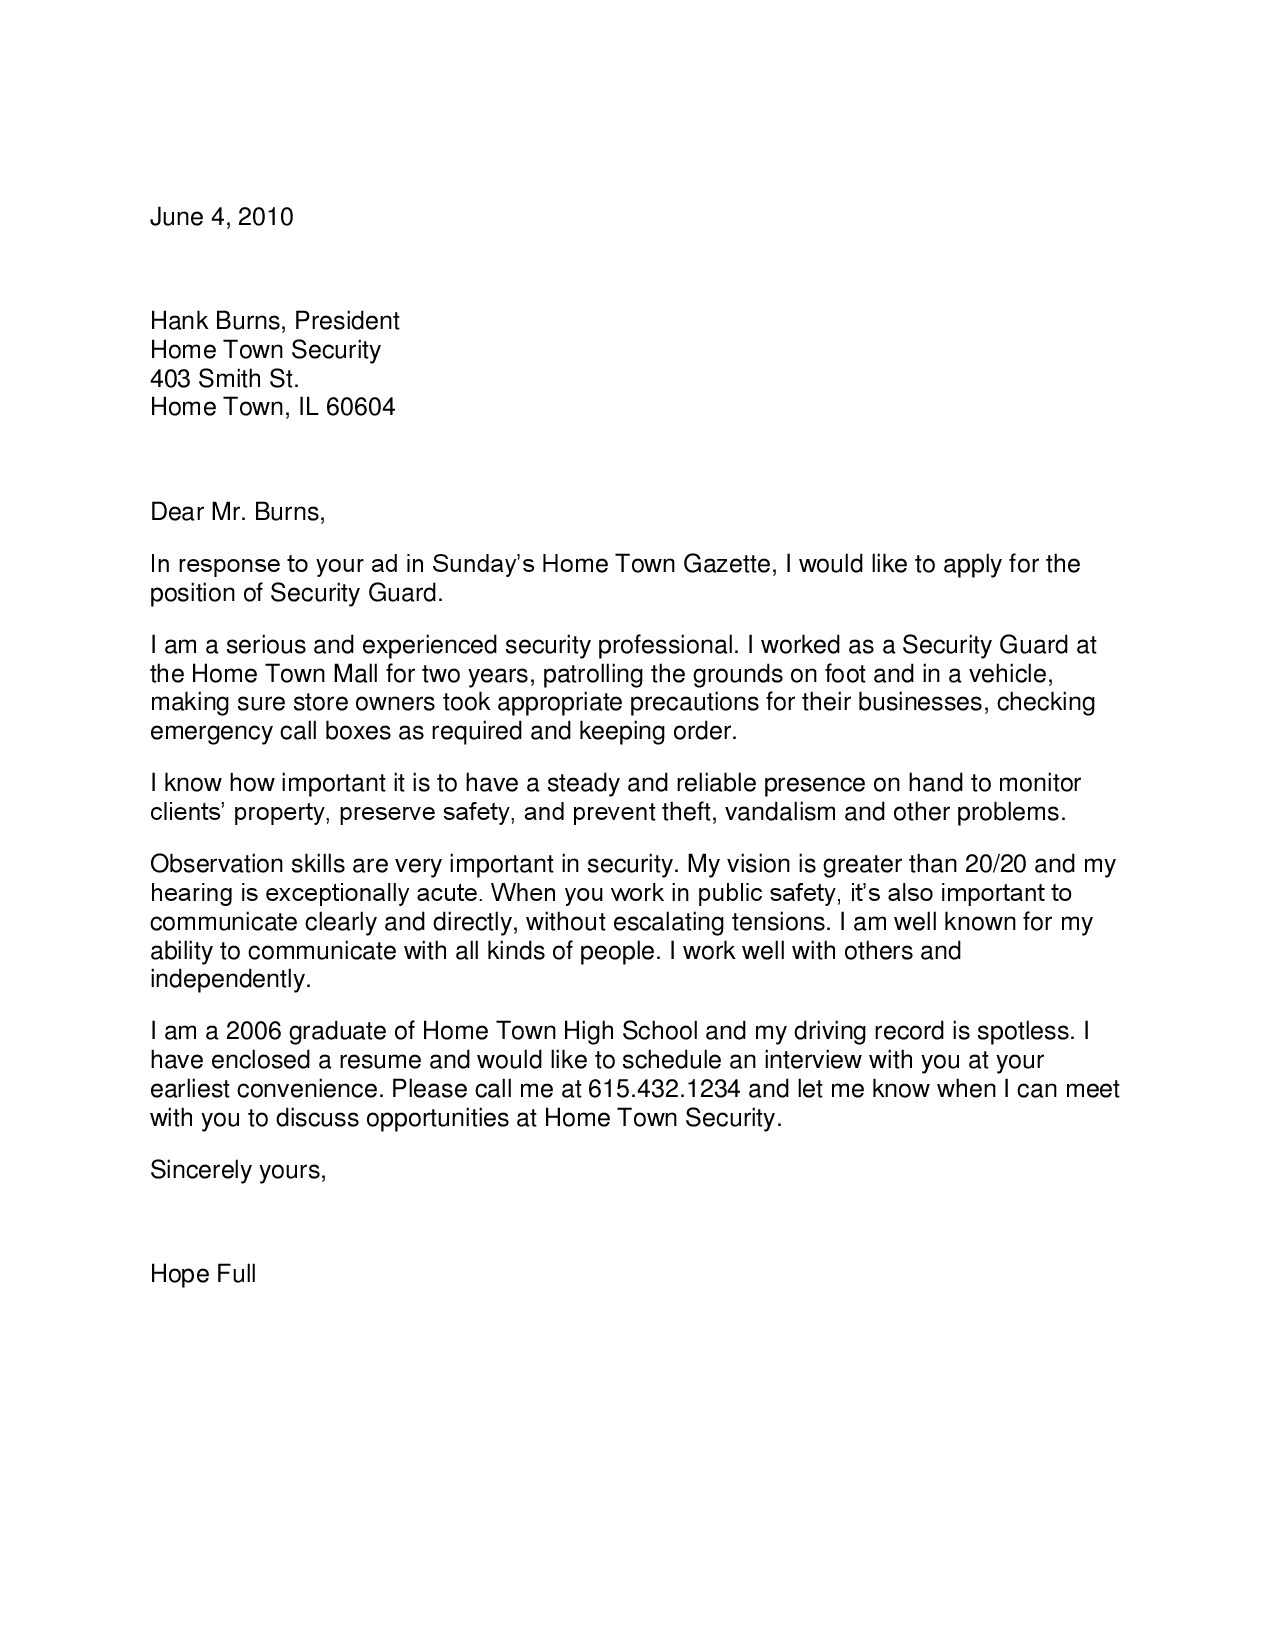 Cover Letter For Security Guard With No Experience | lv.crelegant.com